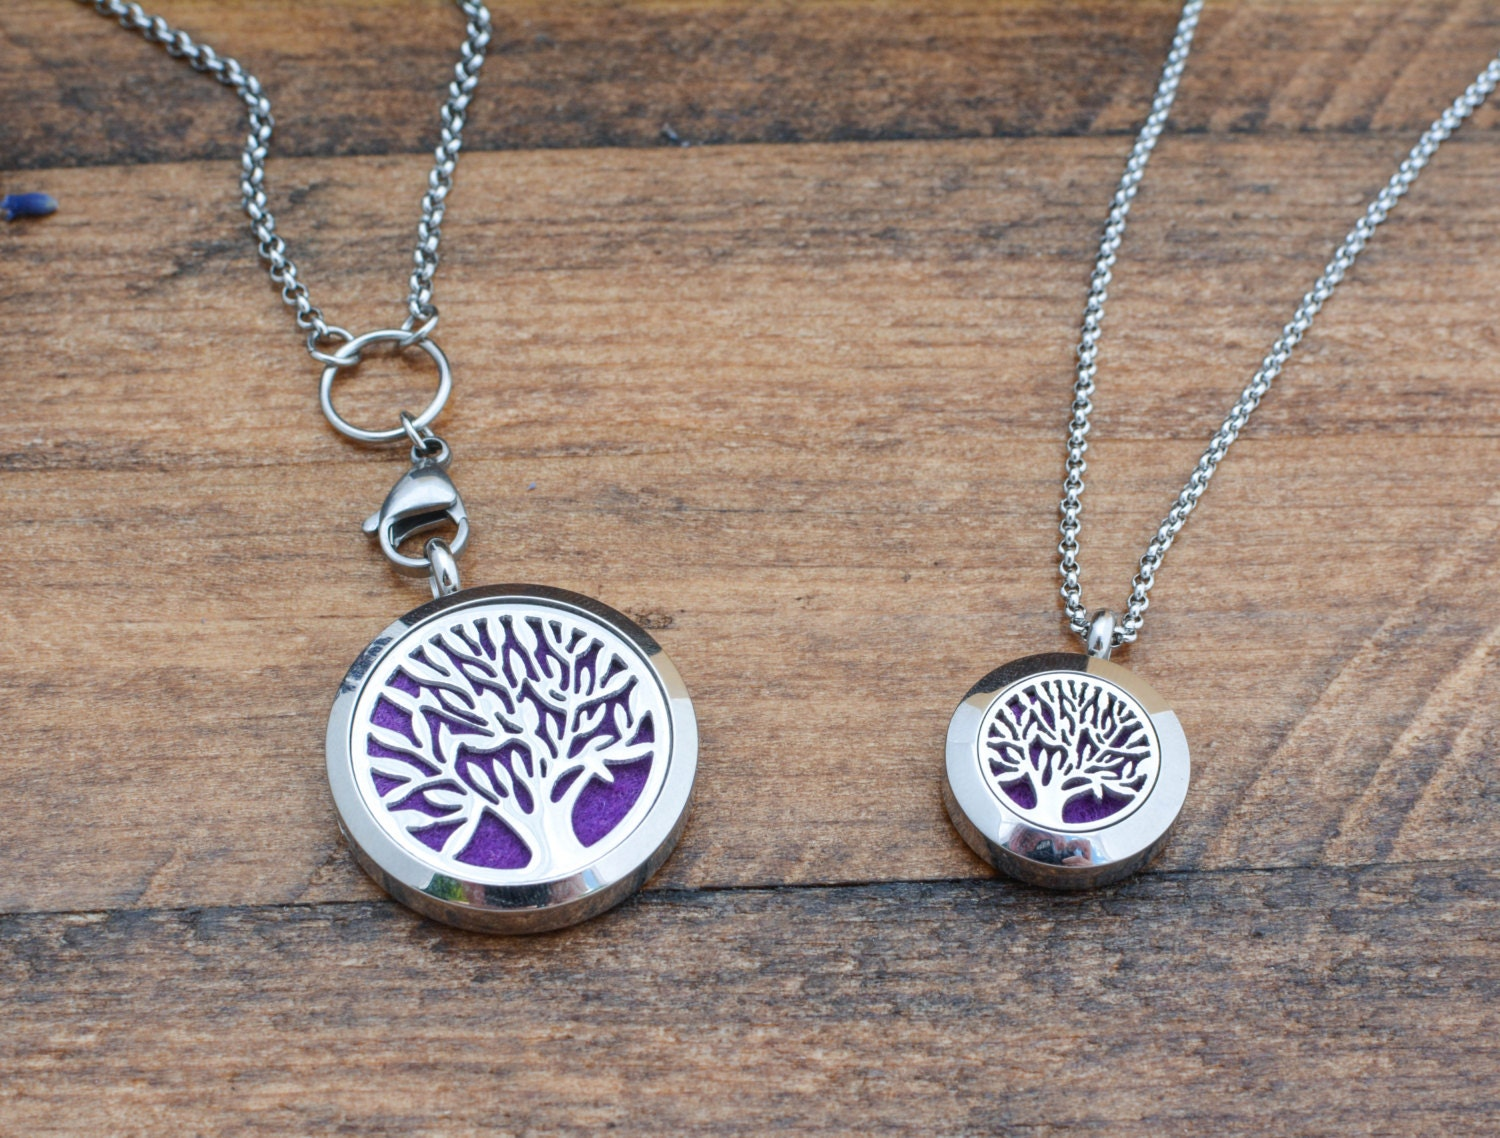 #476784 Essential Oil Diffuser Necklace Set By WildRootsDiffusery  Most Effective 1175 Aromatherapy Diffuser Set pictures with 1500x1138 px on helpvideos.info - Air Conditioners, Air Coolers and more